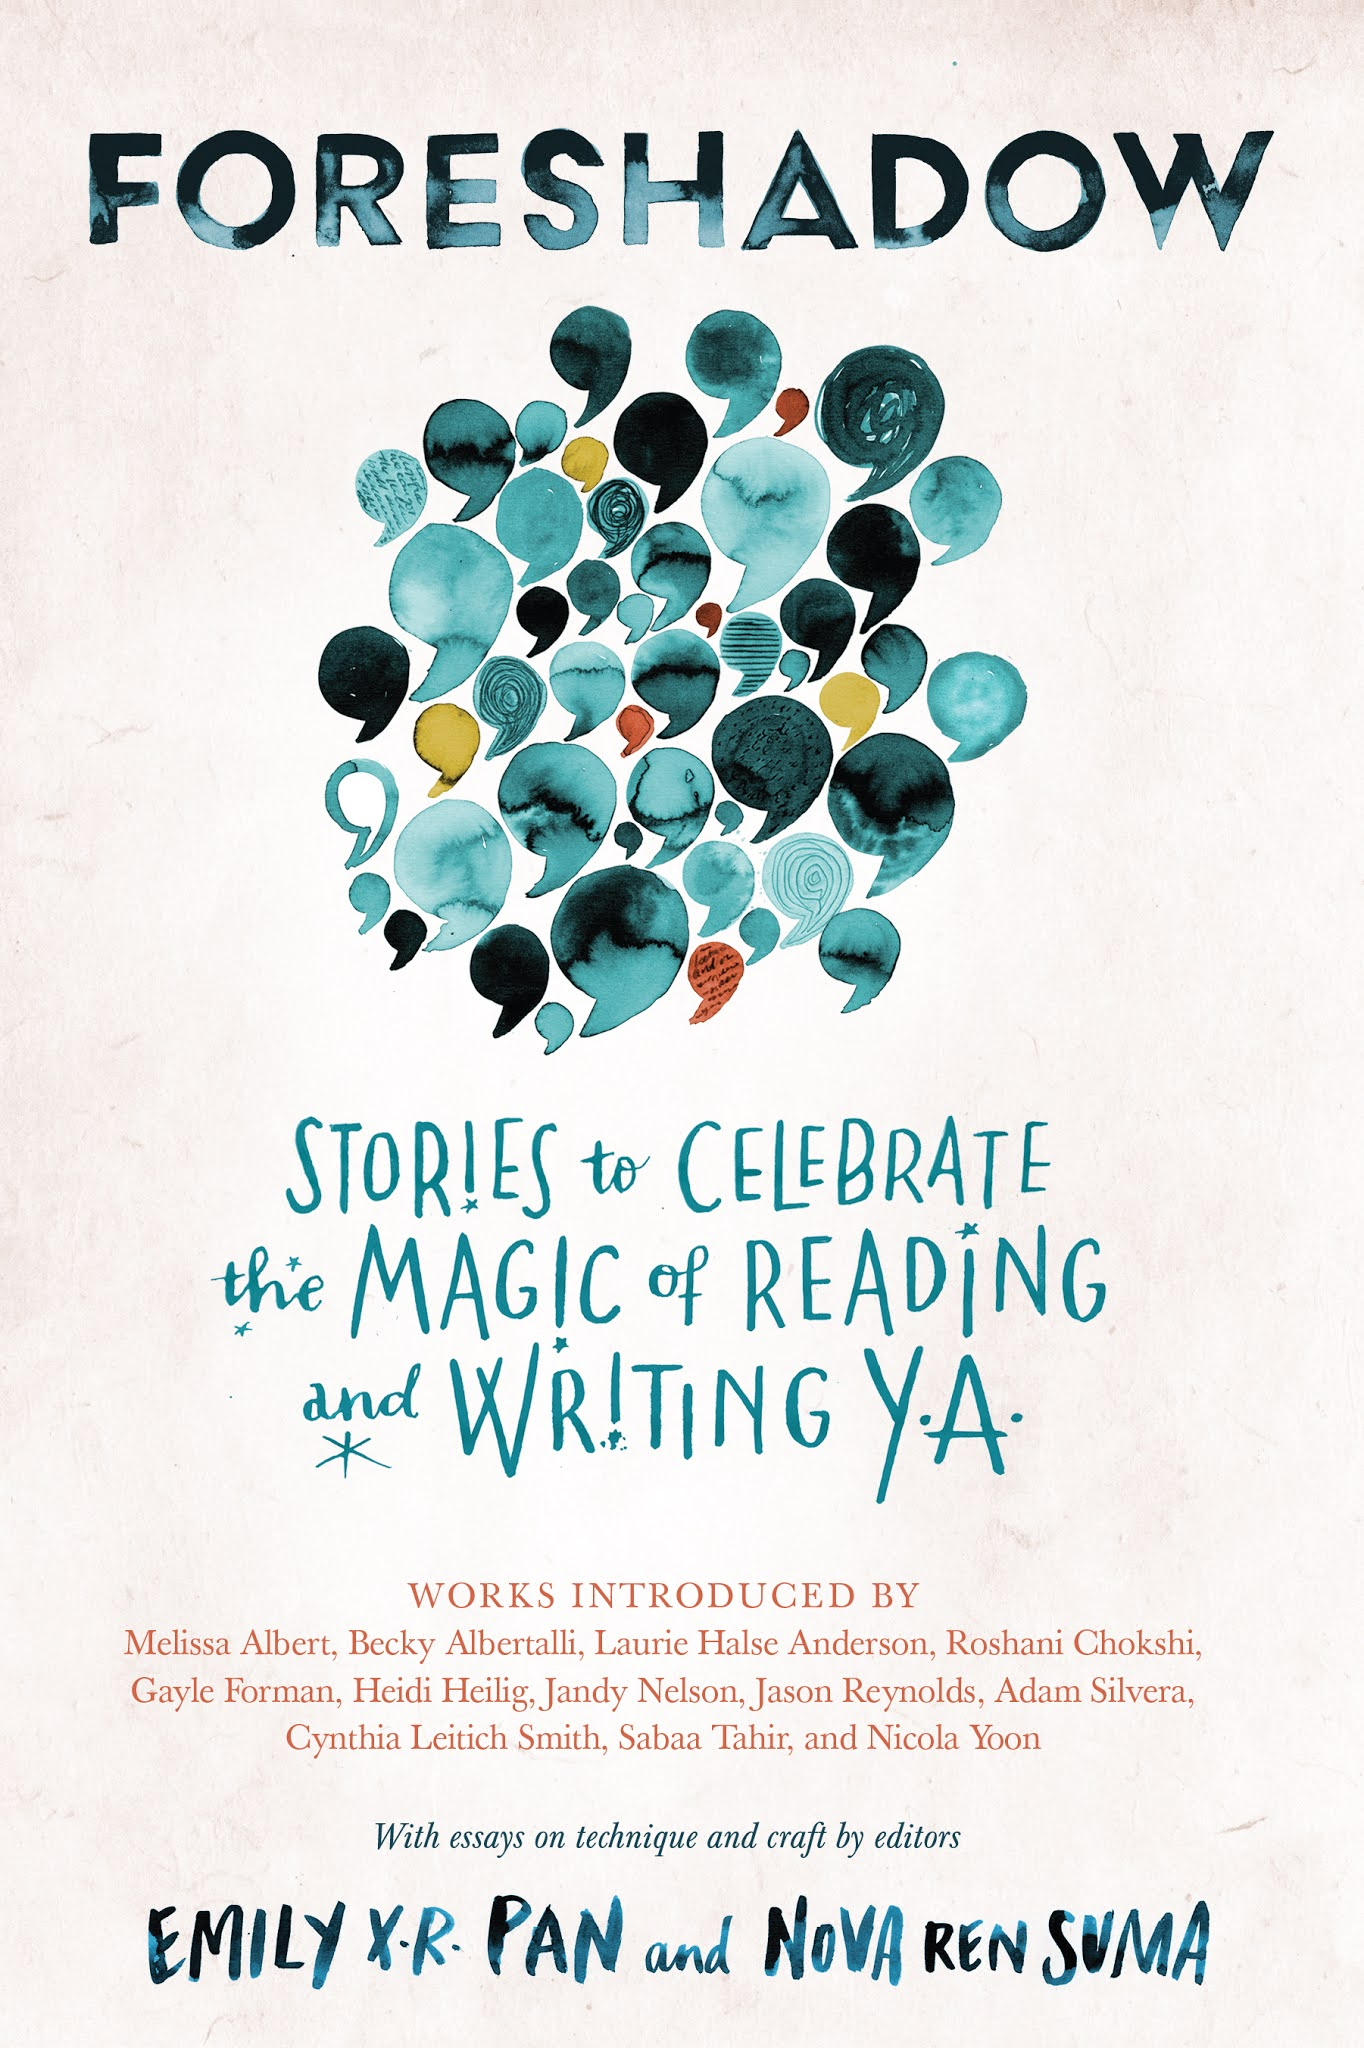 Foreshadow: Stories to Celebrate the Magic of Reading and Writing YA edited by Emily X.R. Pan and Nova Ren Suma